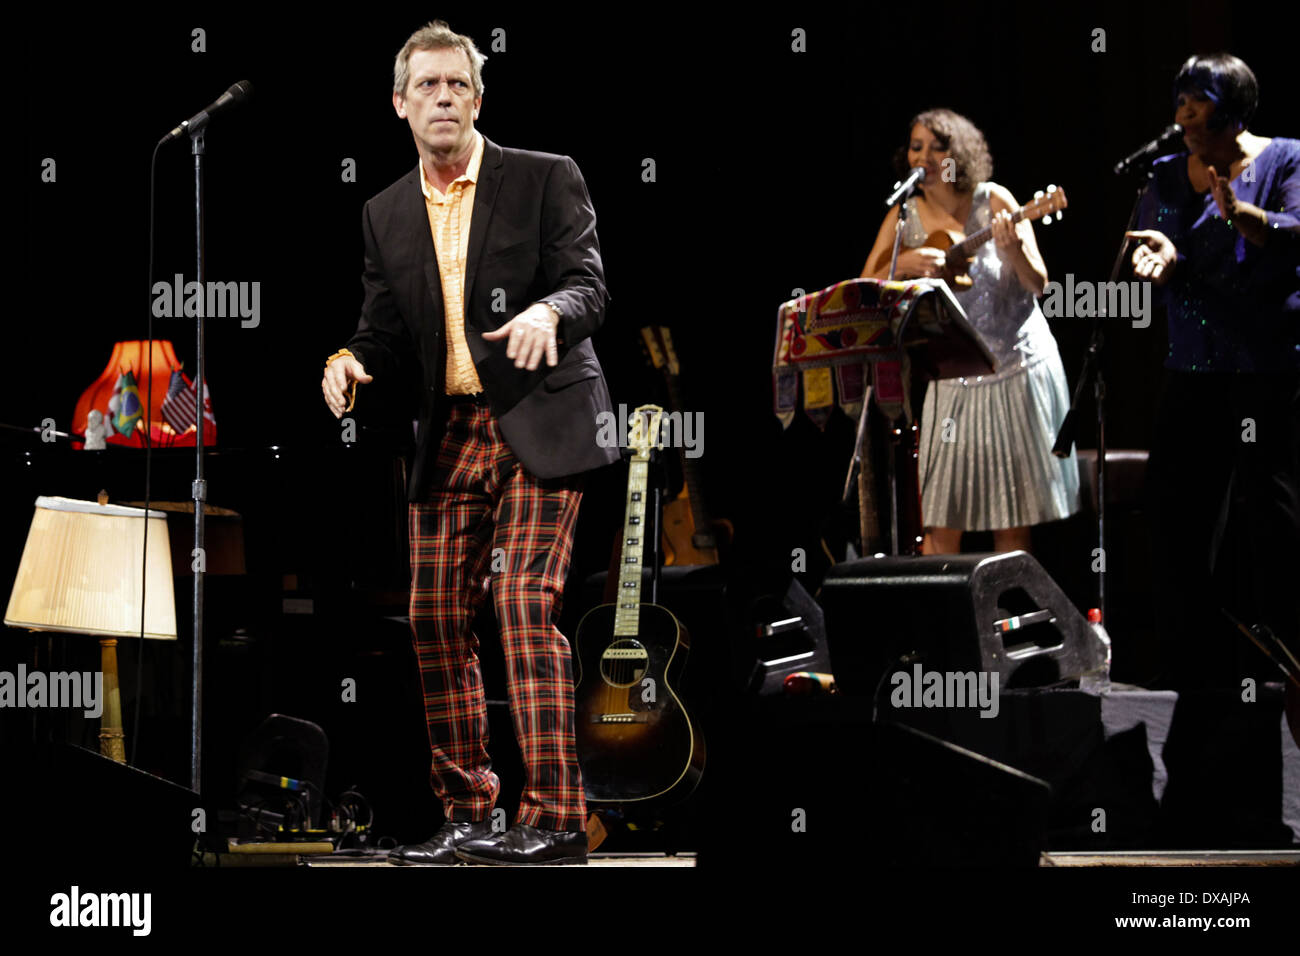 Hugh Laurie & The Cotton Band performs in Citibank Hall, Rio de Janeiro, on March 30th, 2013 - Stock Image